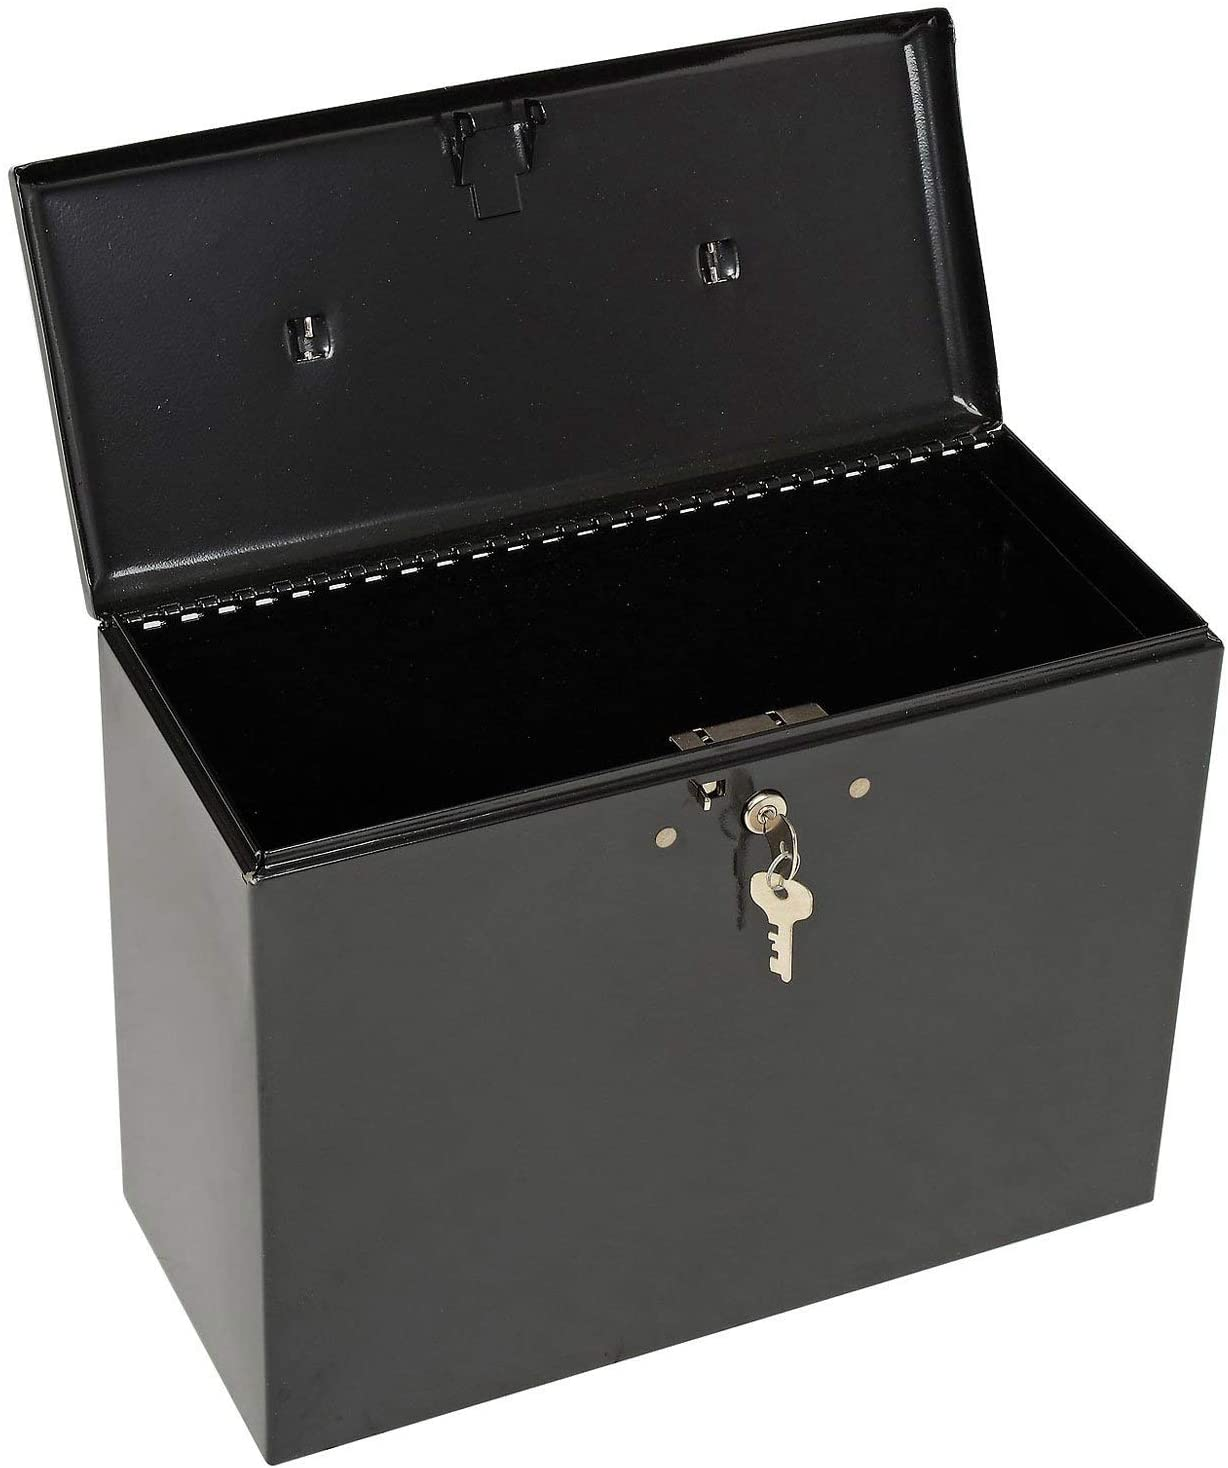 Master Lock 7148D File Box, 0.49 Cubic Feet, Black: Home Improvement